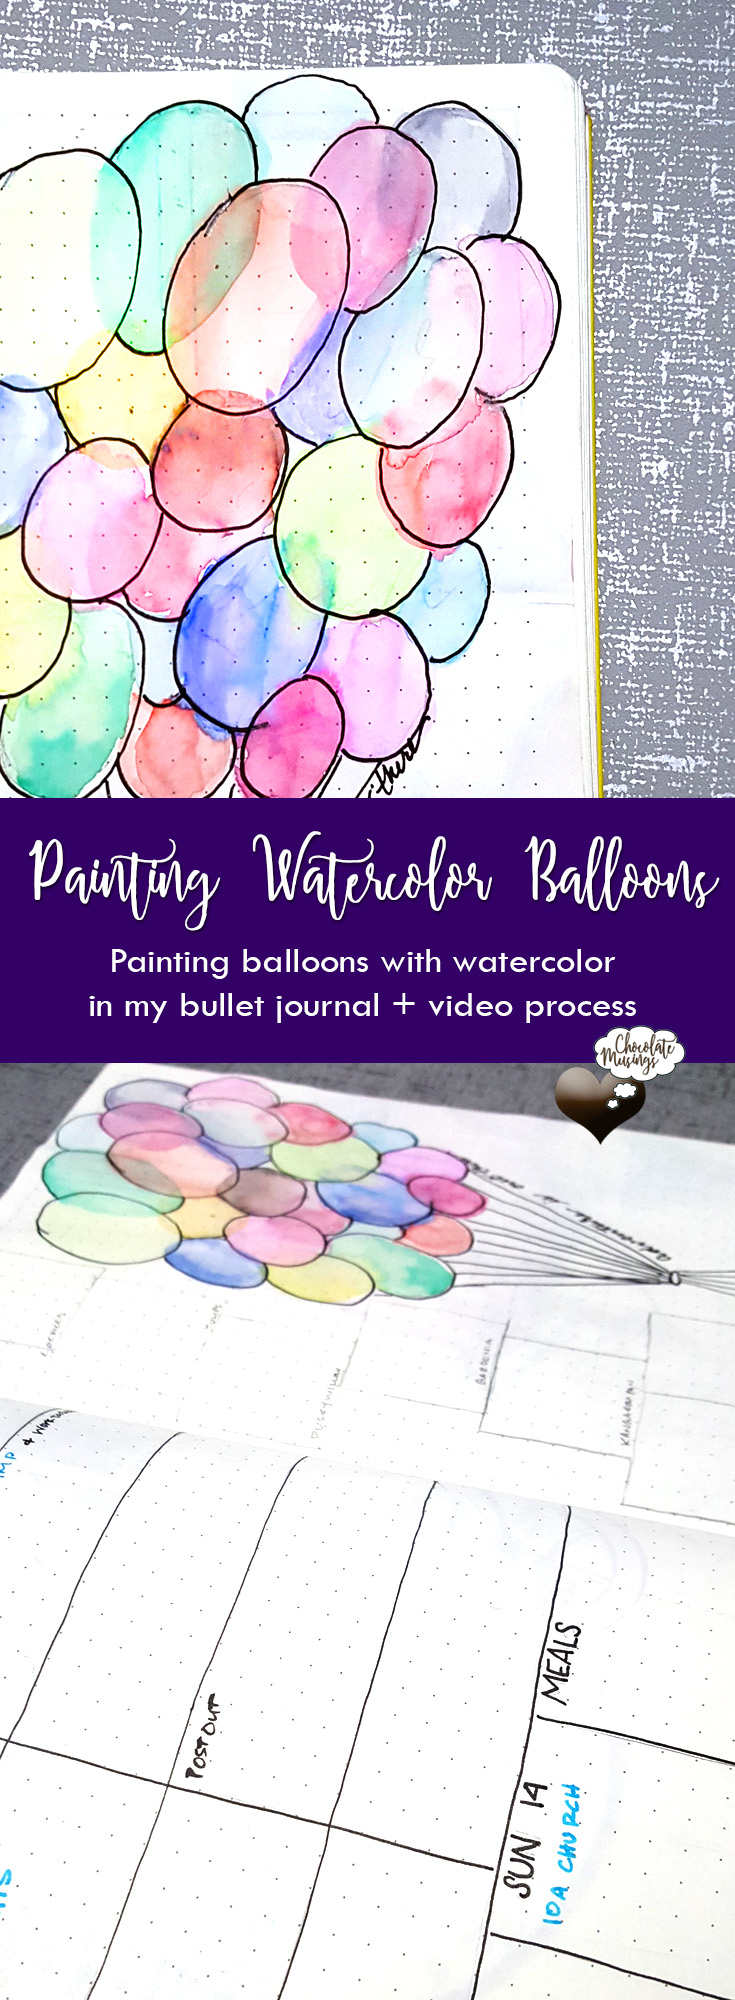 learning to paint watercolor balloons in my bullet journal - weekly layout, crayola markers, + process video